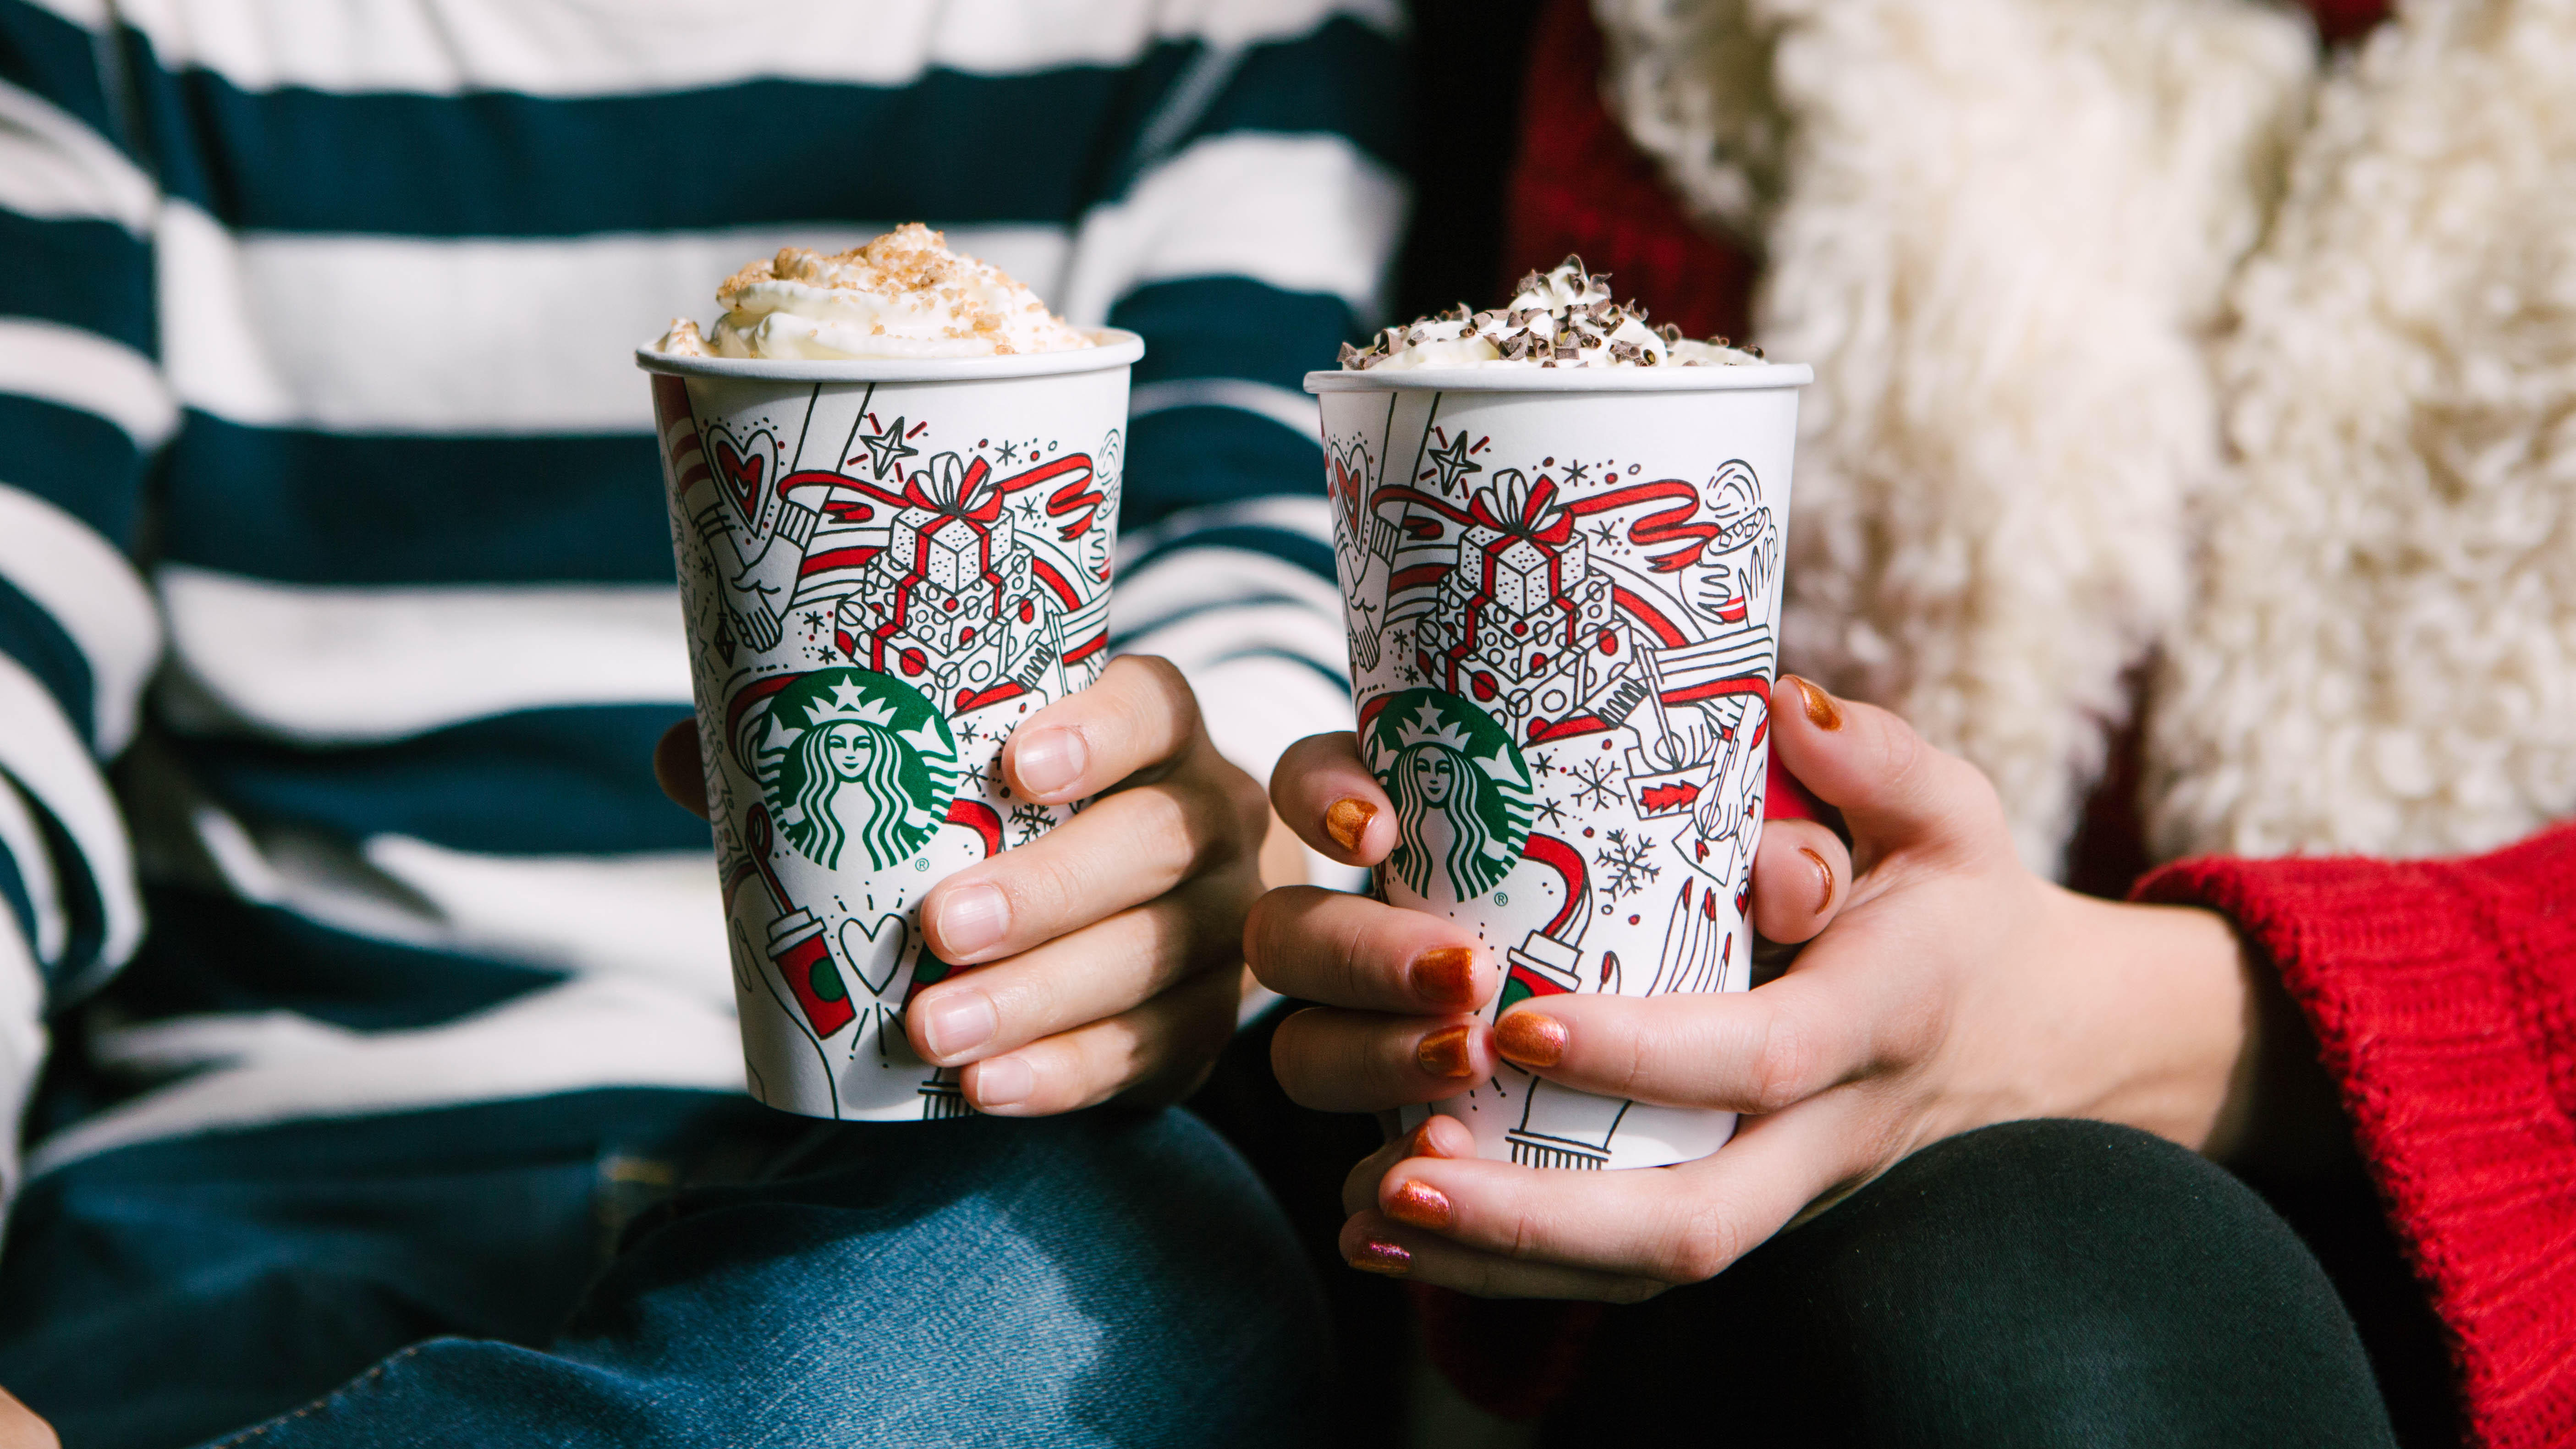 Will Starbucks Buy One Get One Free Deal Offer Jolly Its